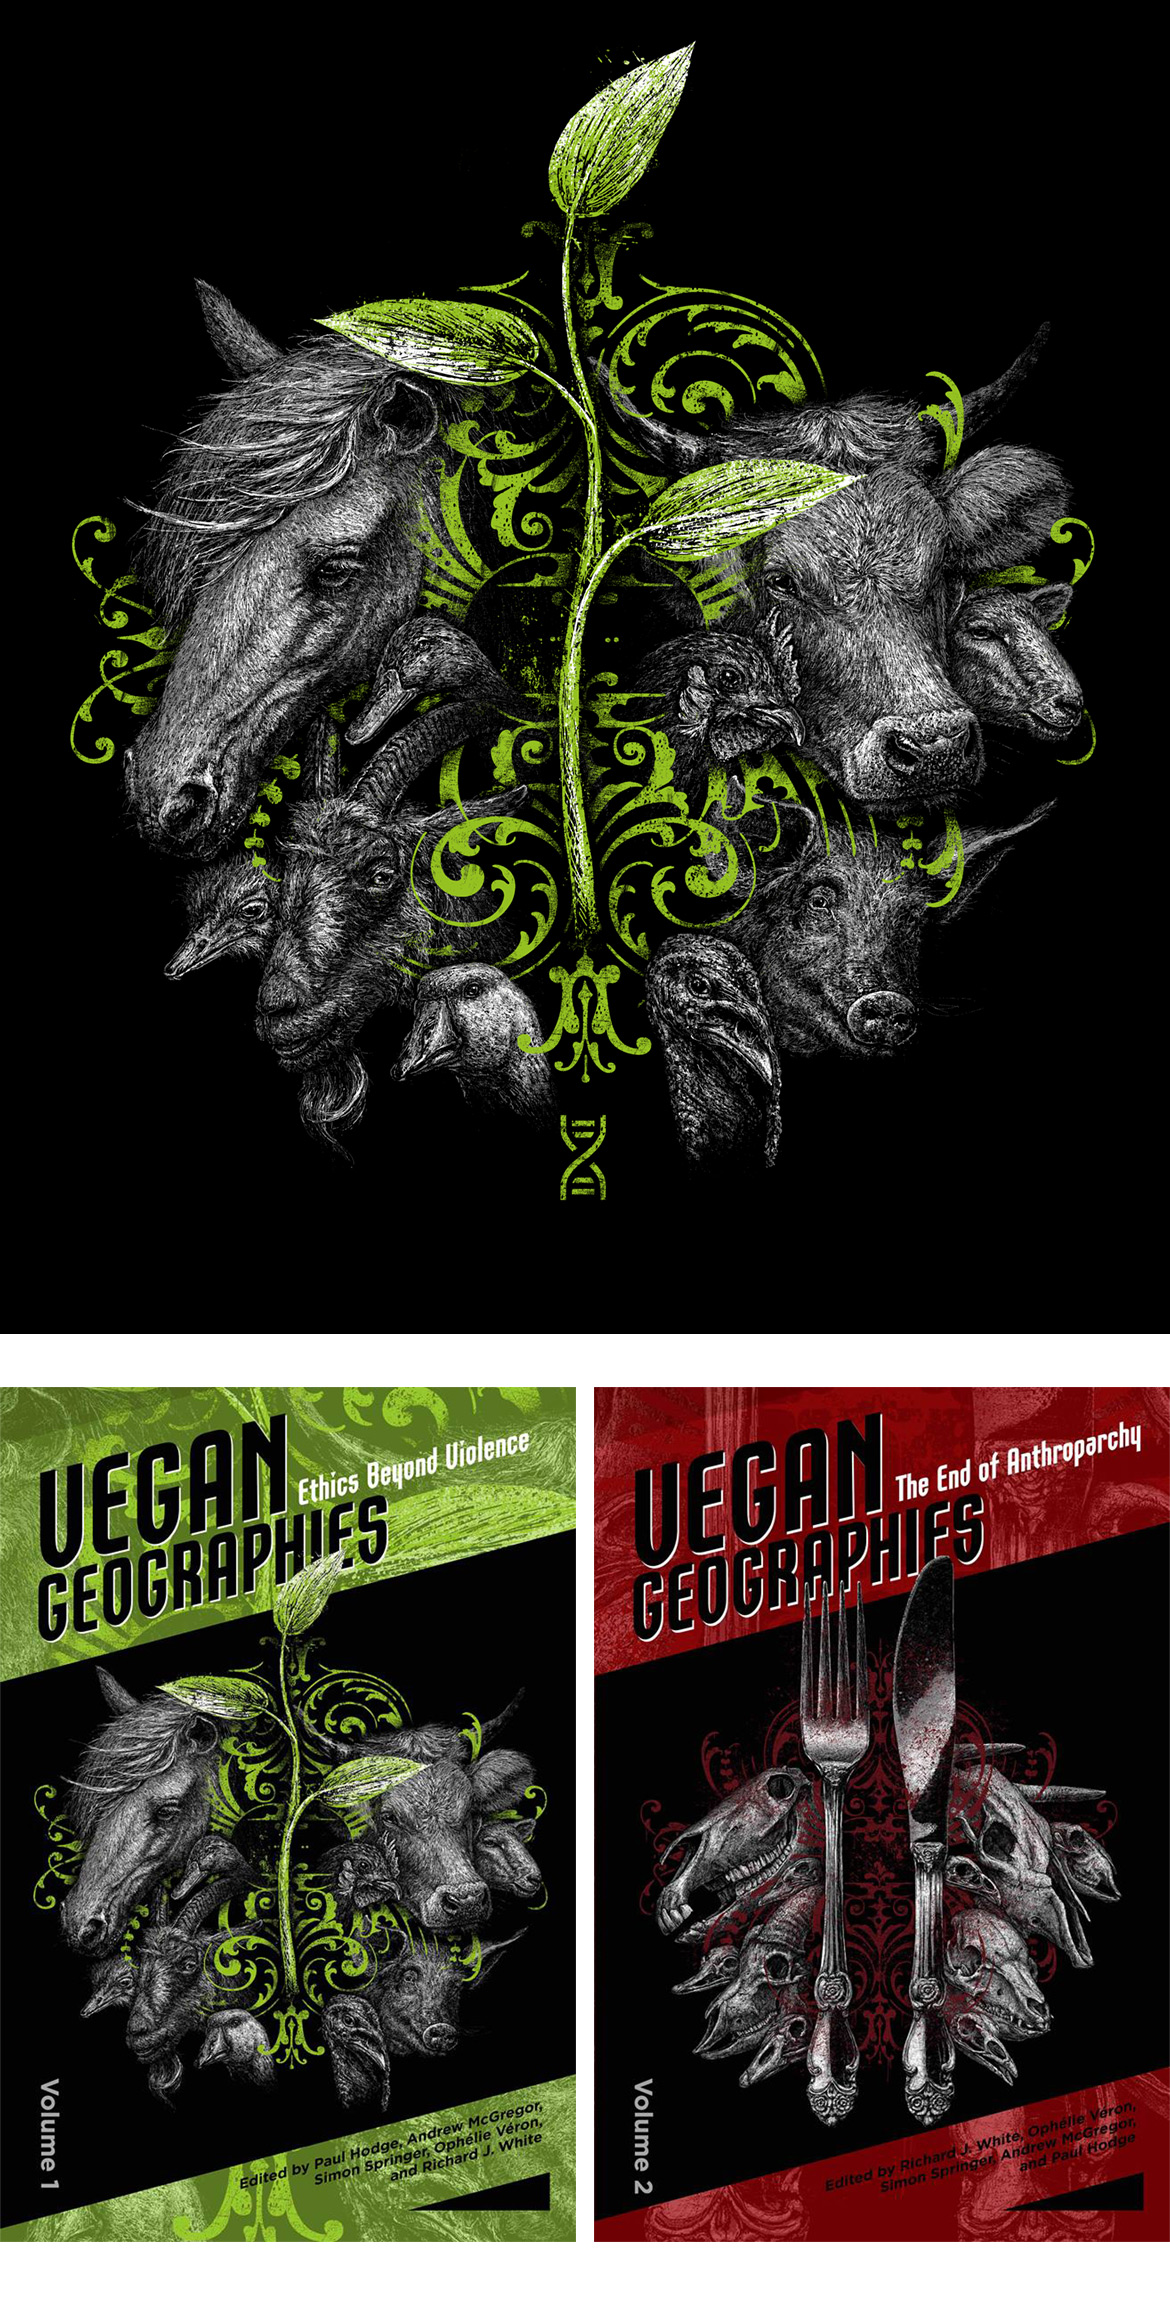 VEGAN GEOGRAPHIES Artwork by Roland Straller